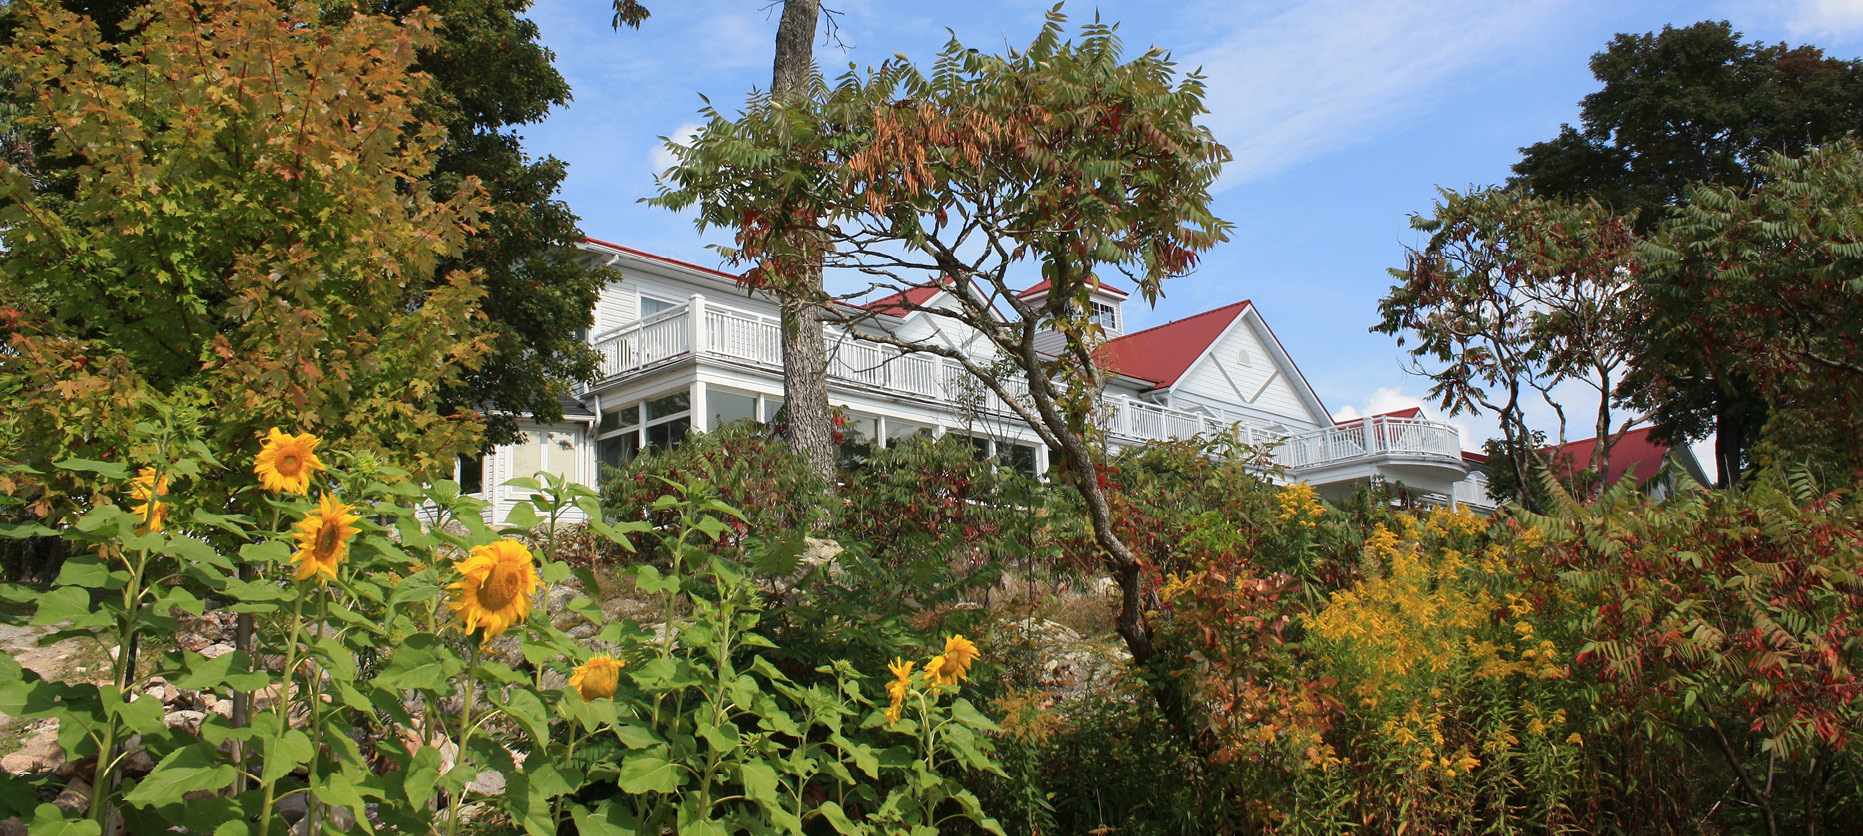 View of main Viamede Resort building with wildflowers and shrubs in the foreground.